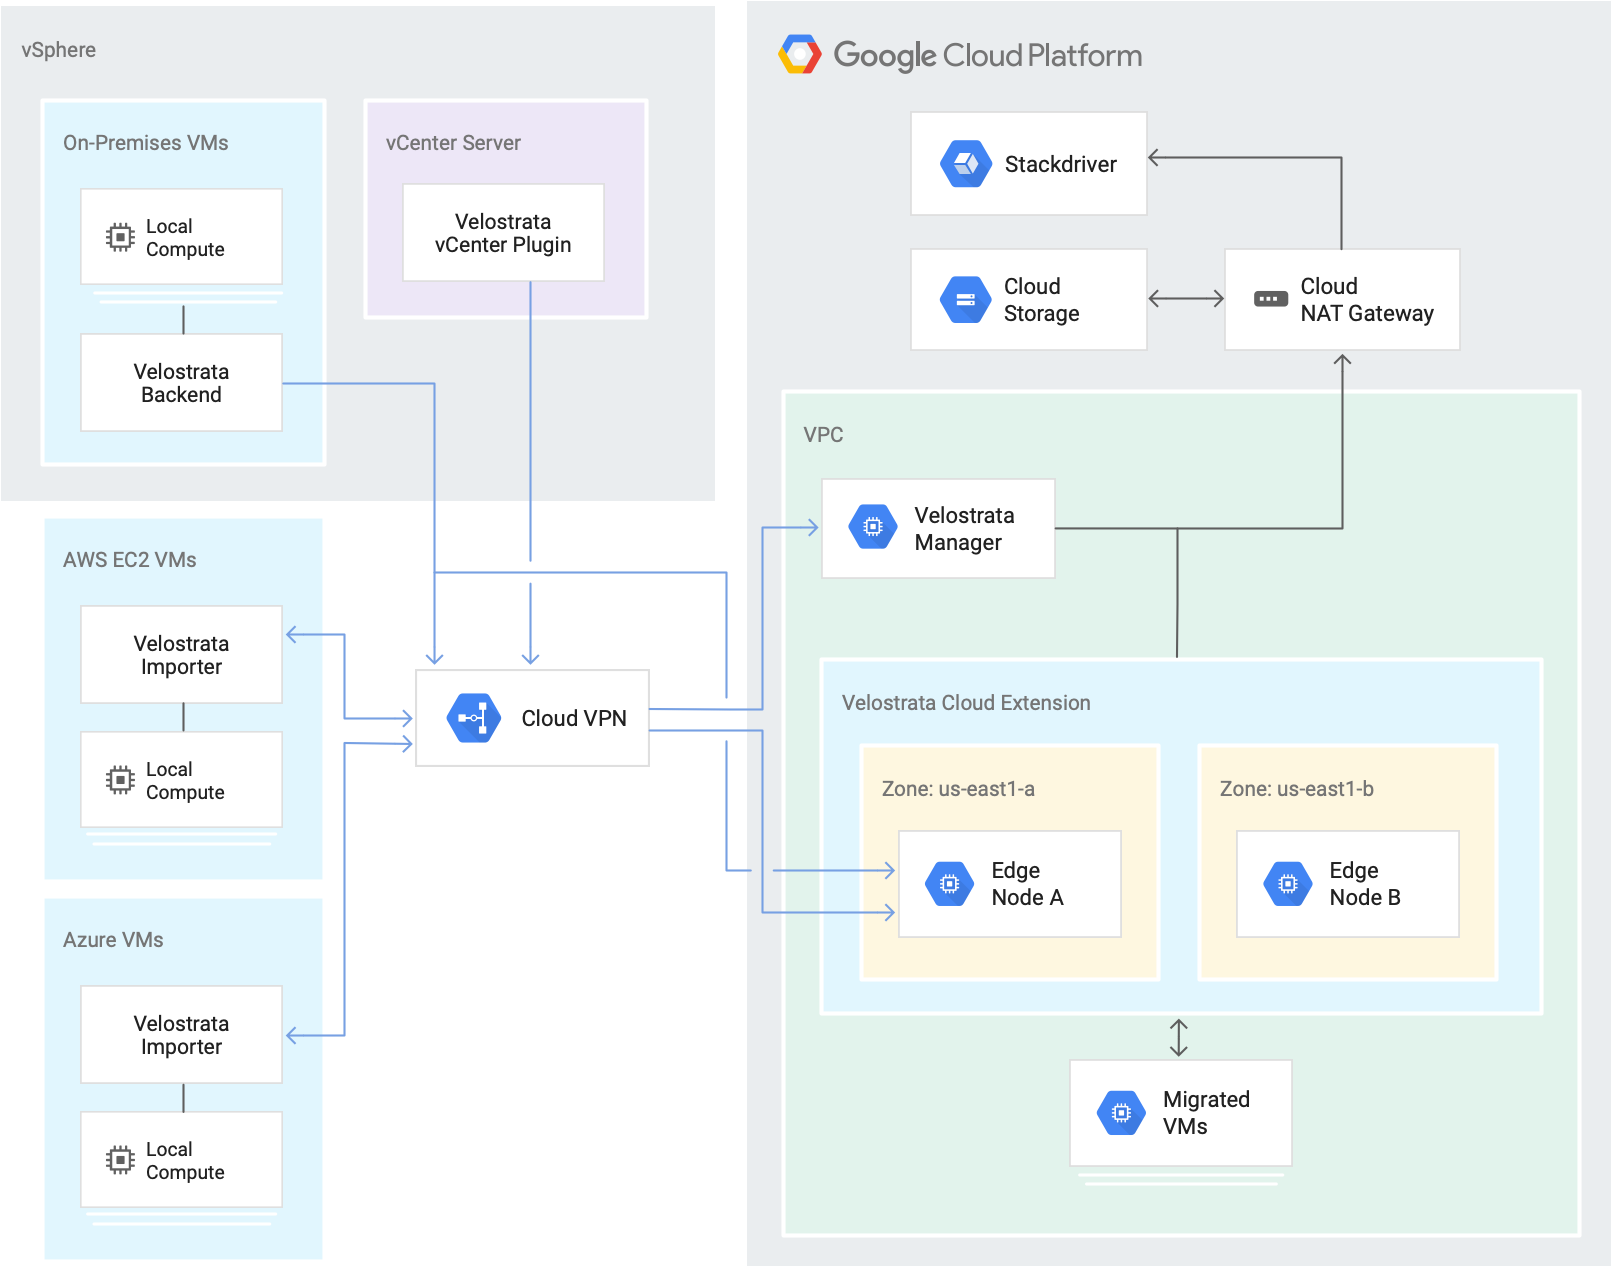 Google Cloud reference architecture   Migrate for Compute